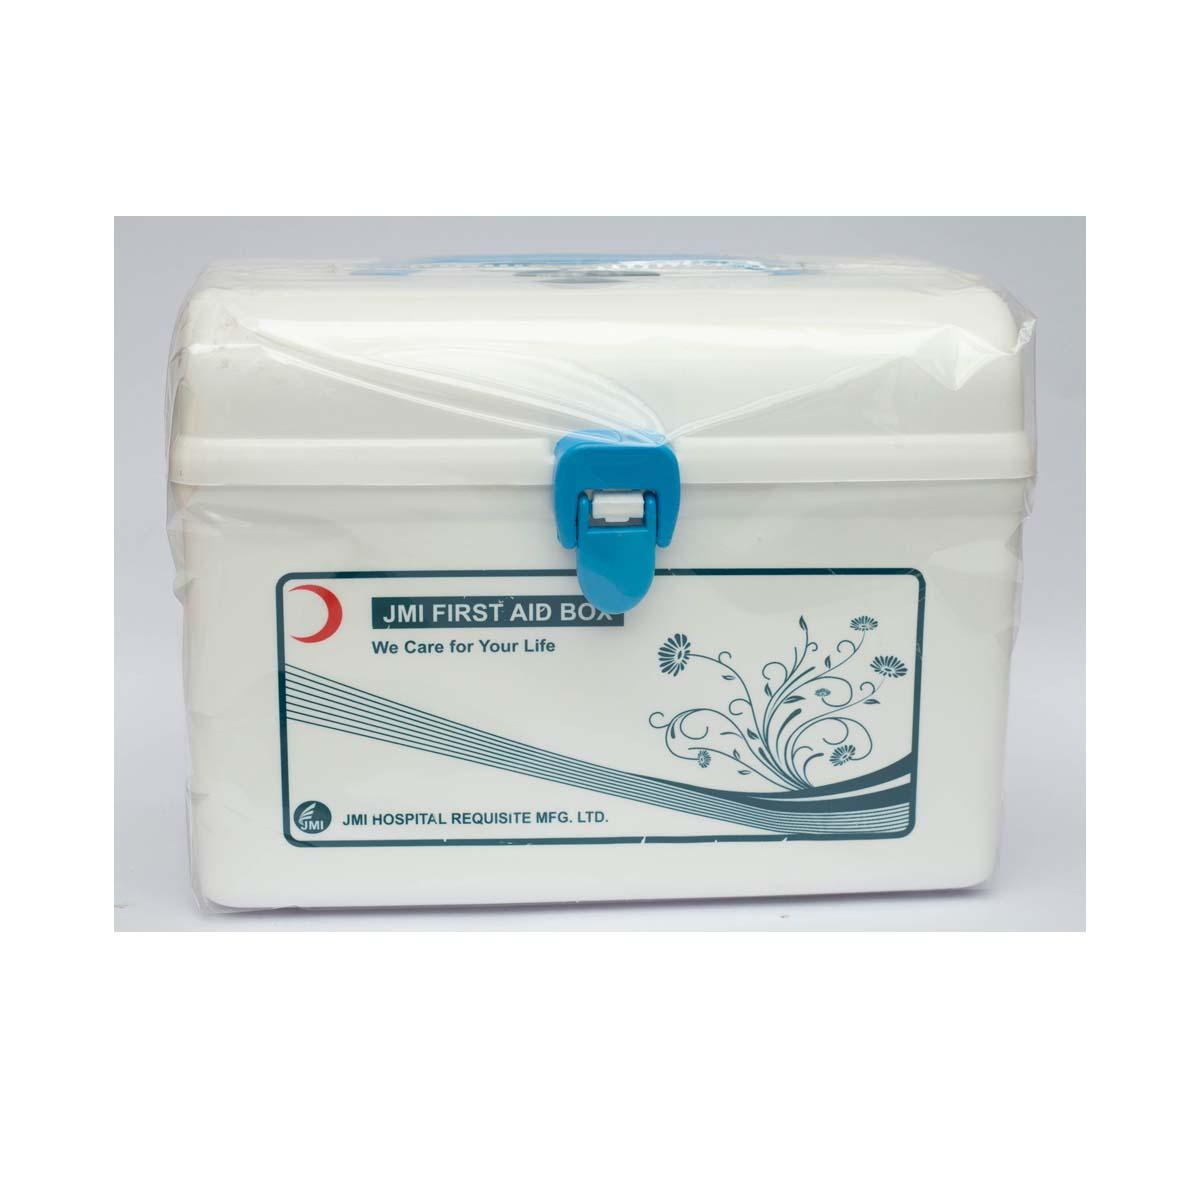 Buy Jajco Trading Medical Supplies at Best Prices Online in